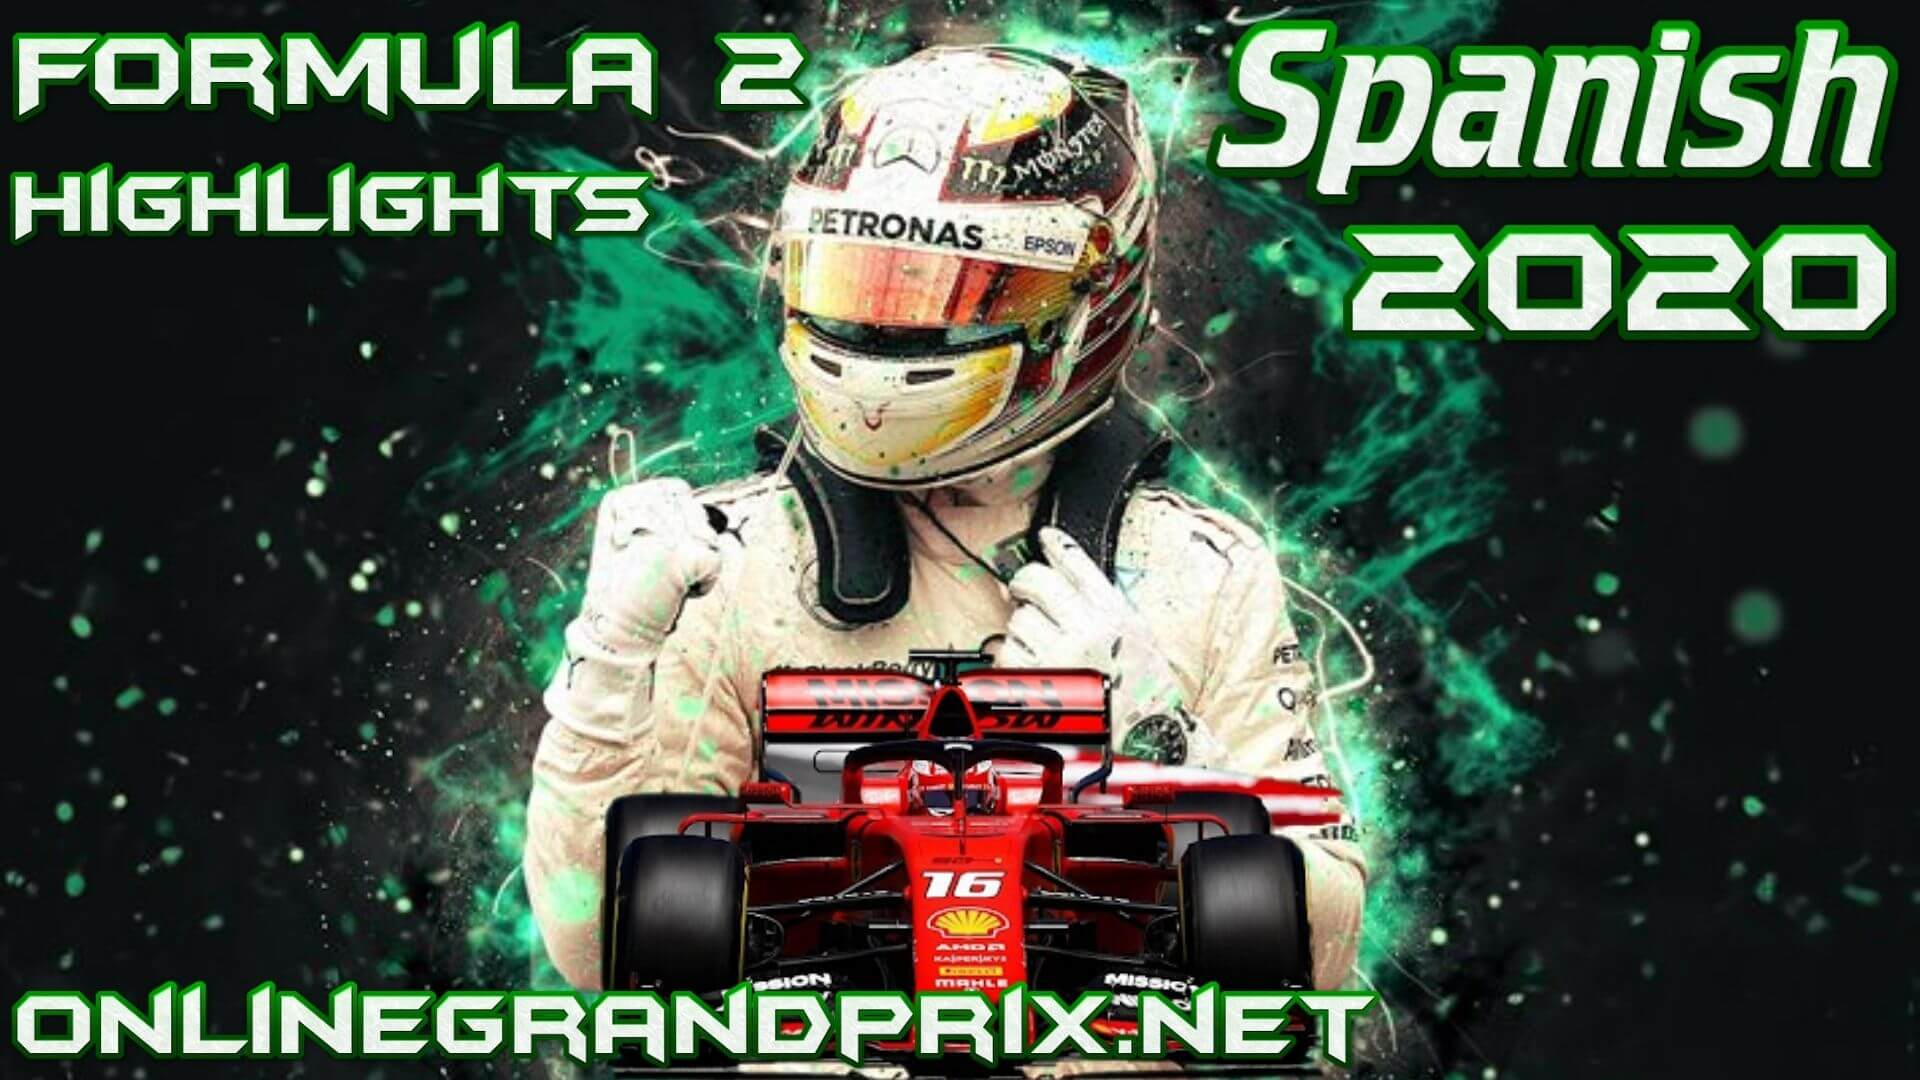 Spanish GP F2 Highlights 2020